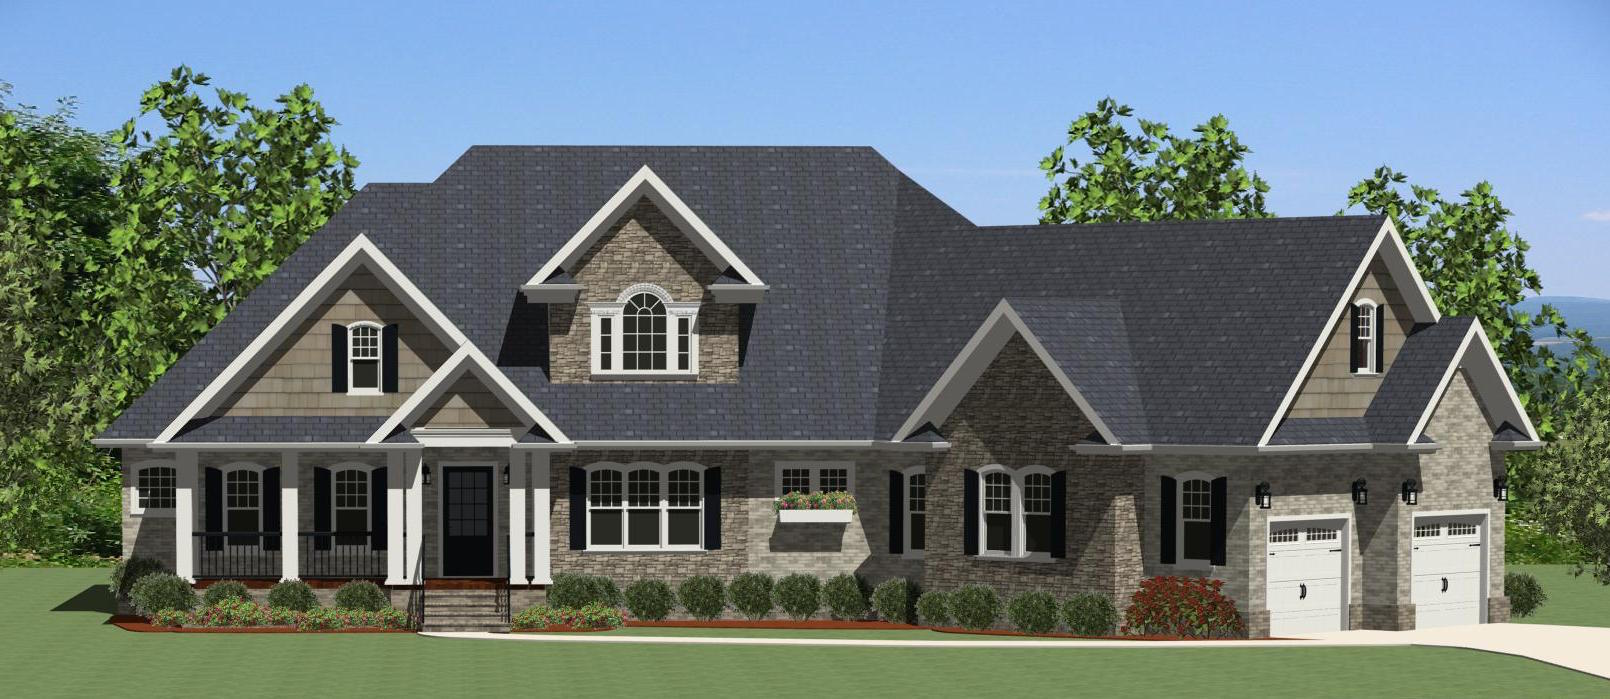 elevation of country home theplancollection house plan 189 1086 on house plans under 3000 square feet